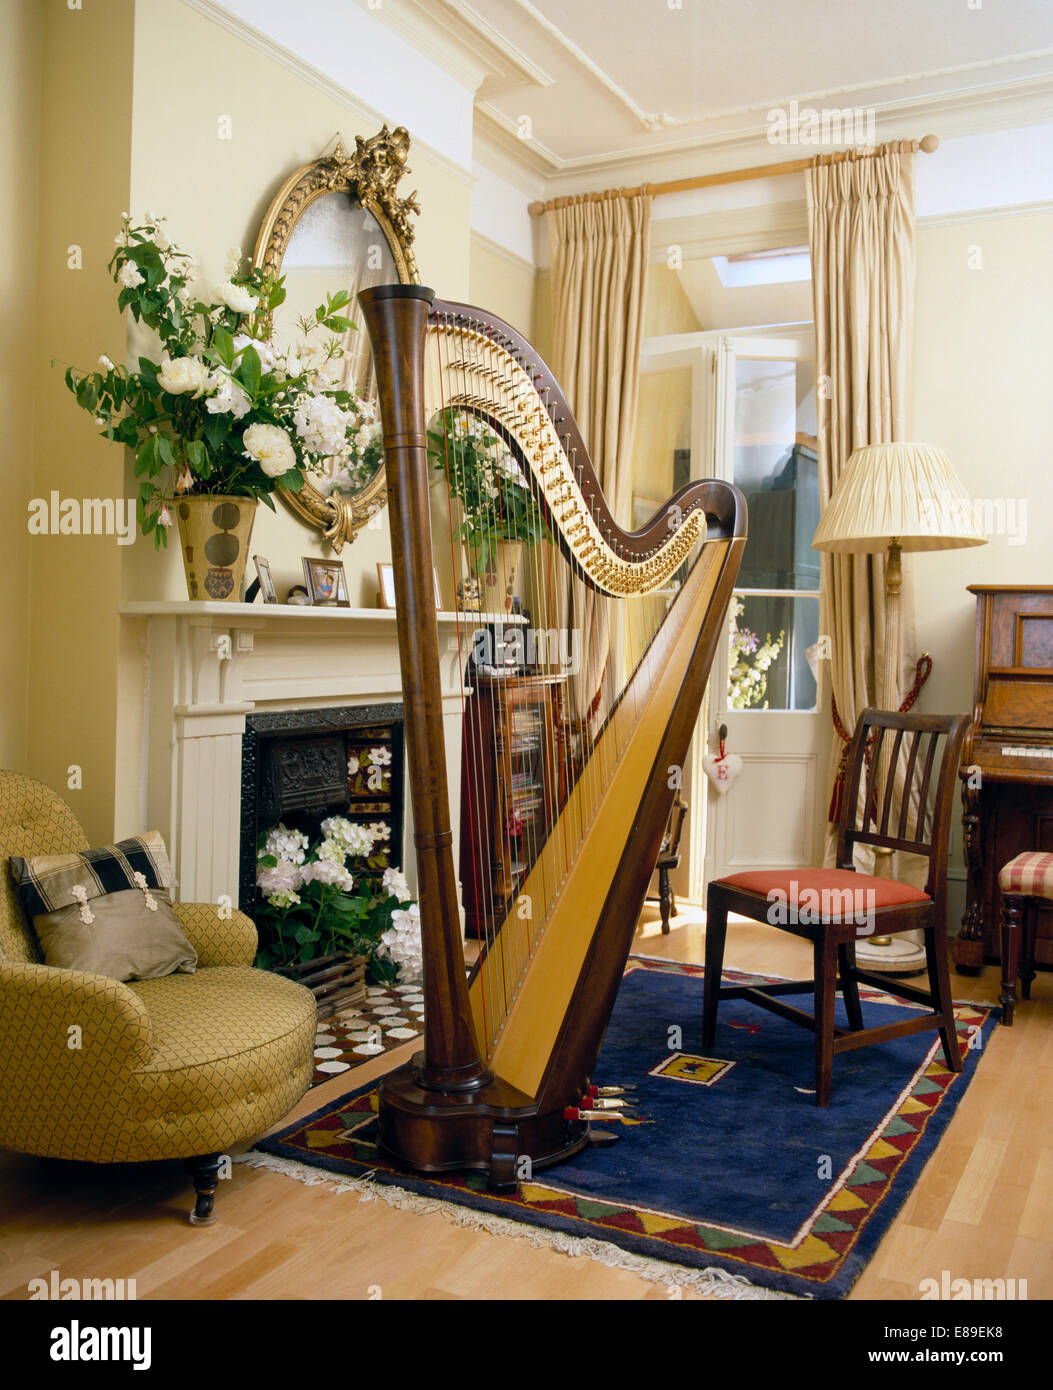 Large Harp On Blue Rug In Front Of Fireplace With Vase Of